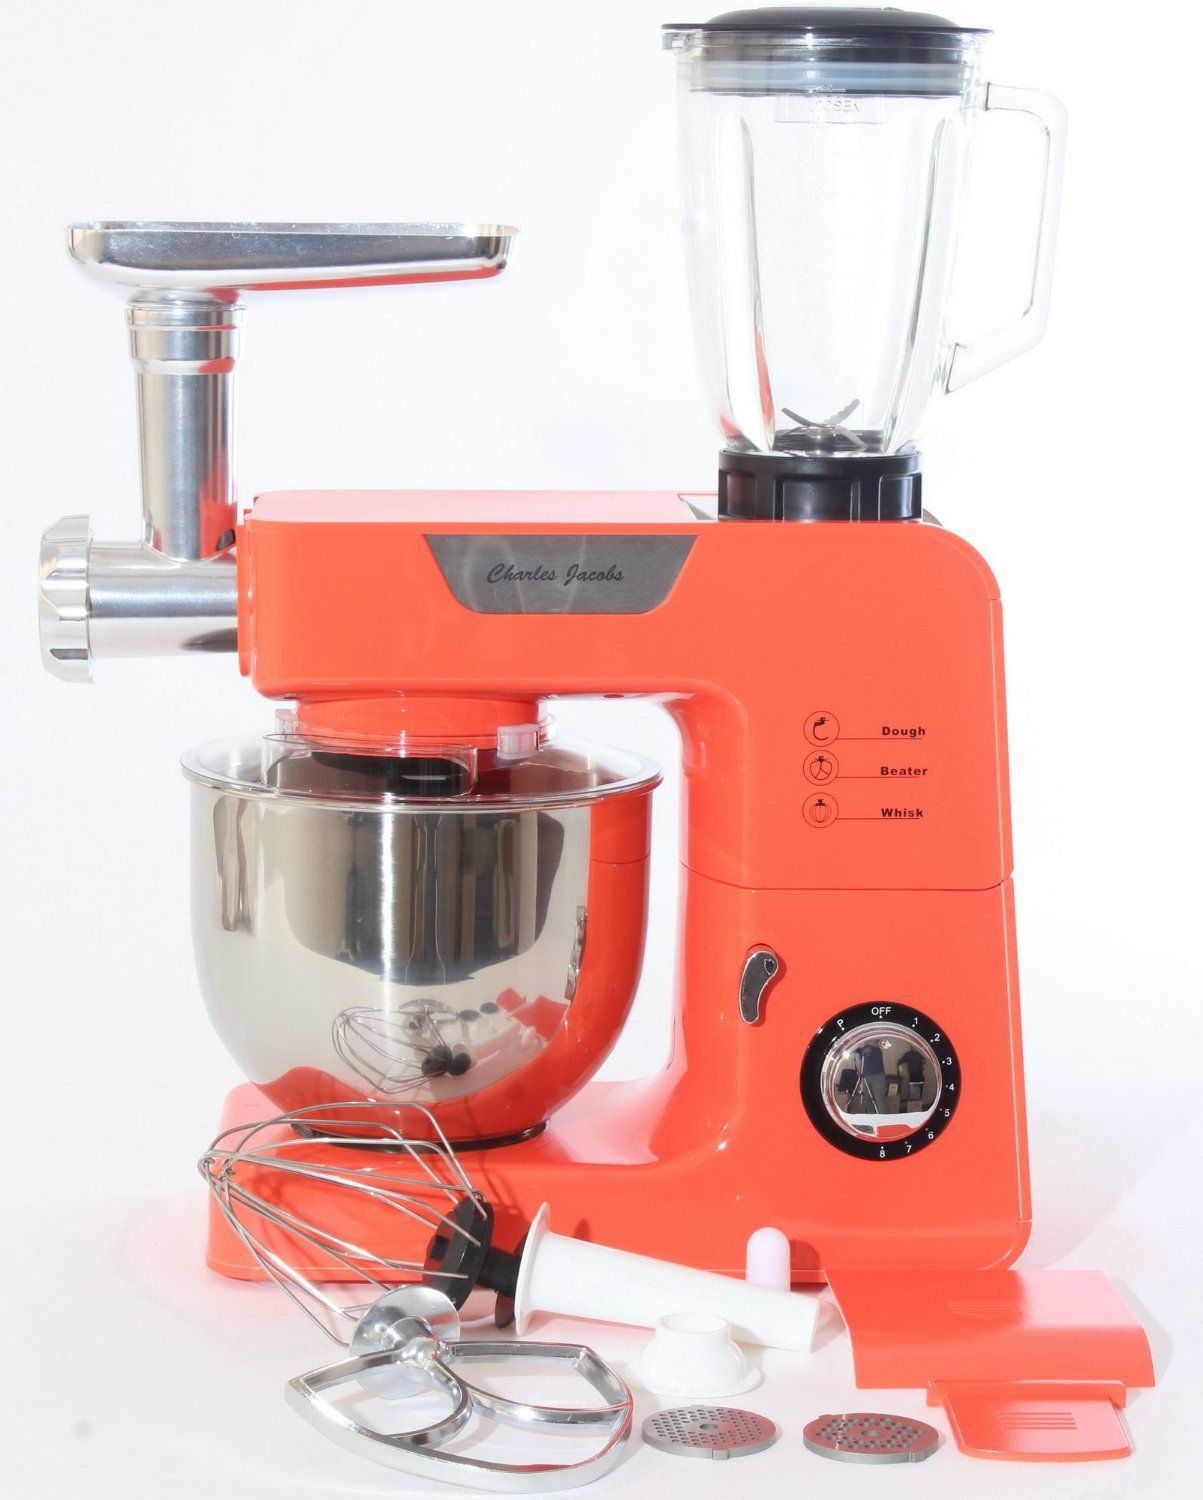 Robot Cocina Be Pro Chef Premier Charles Jacobs Premium Planetary Food Mixer Reviewed Food Mixer